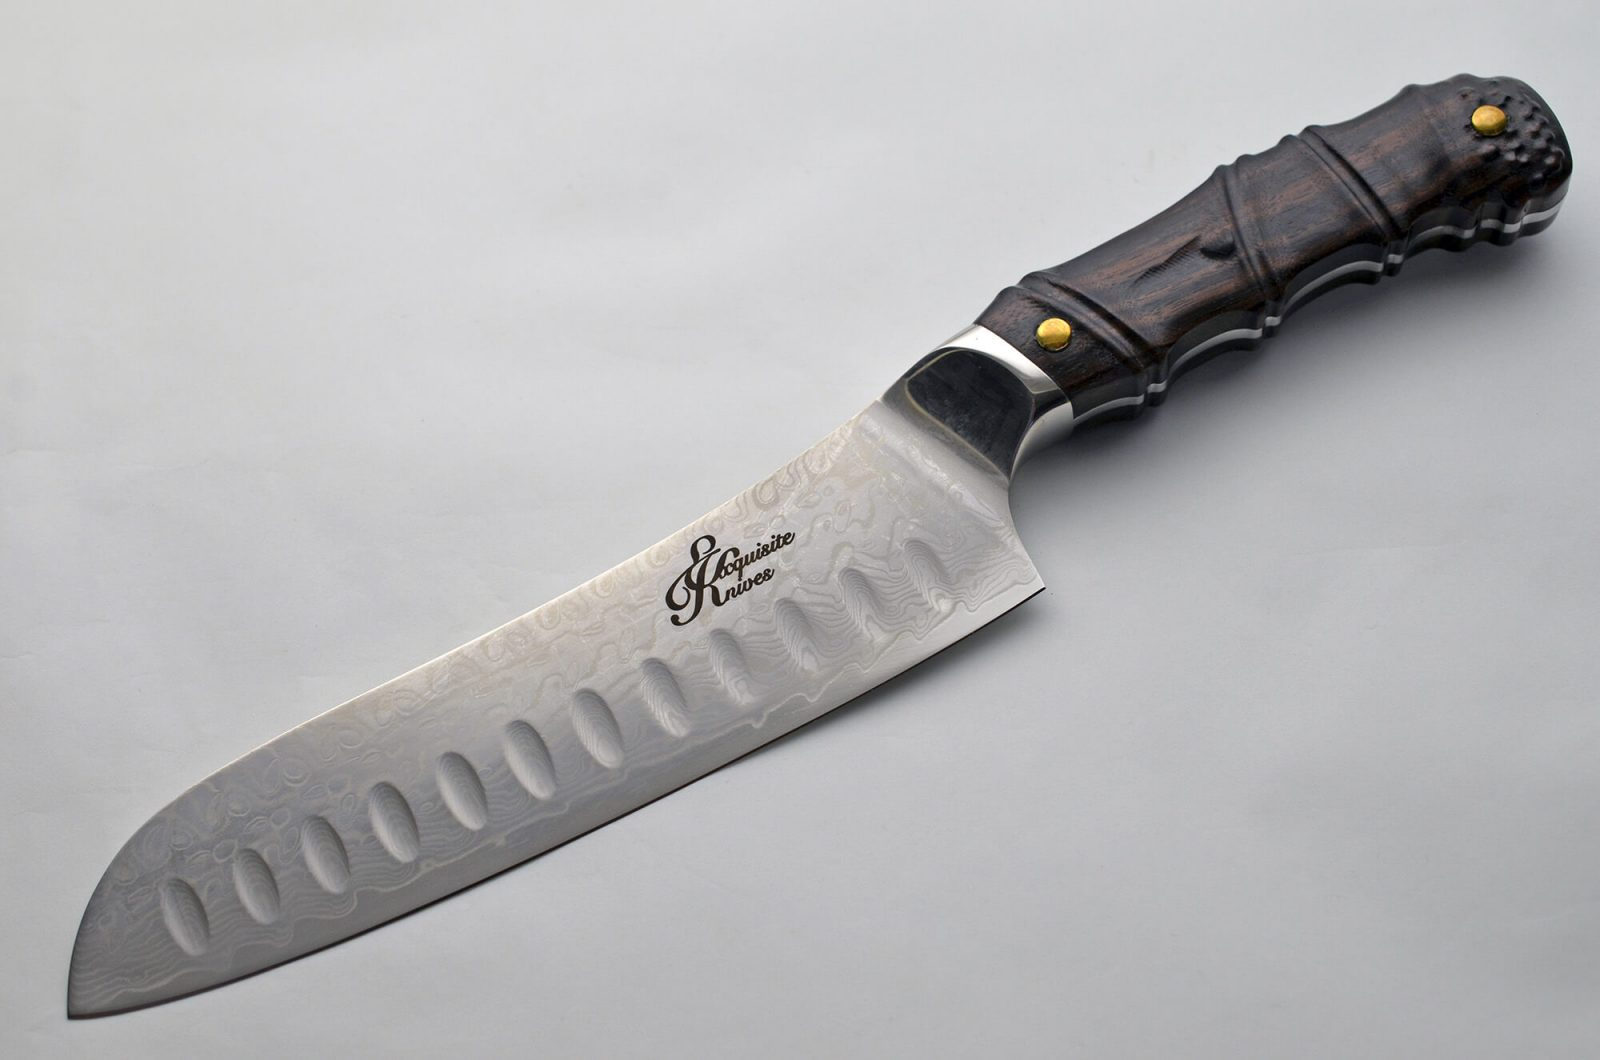 Exquisite Knife custom knife